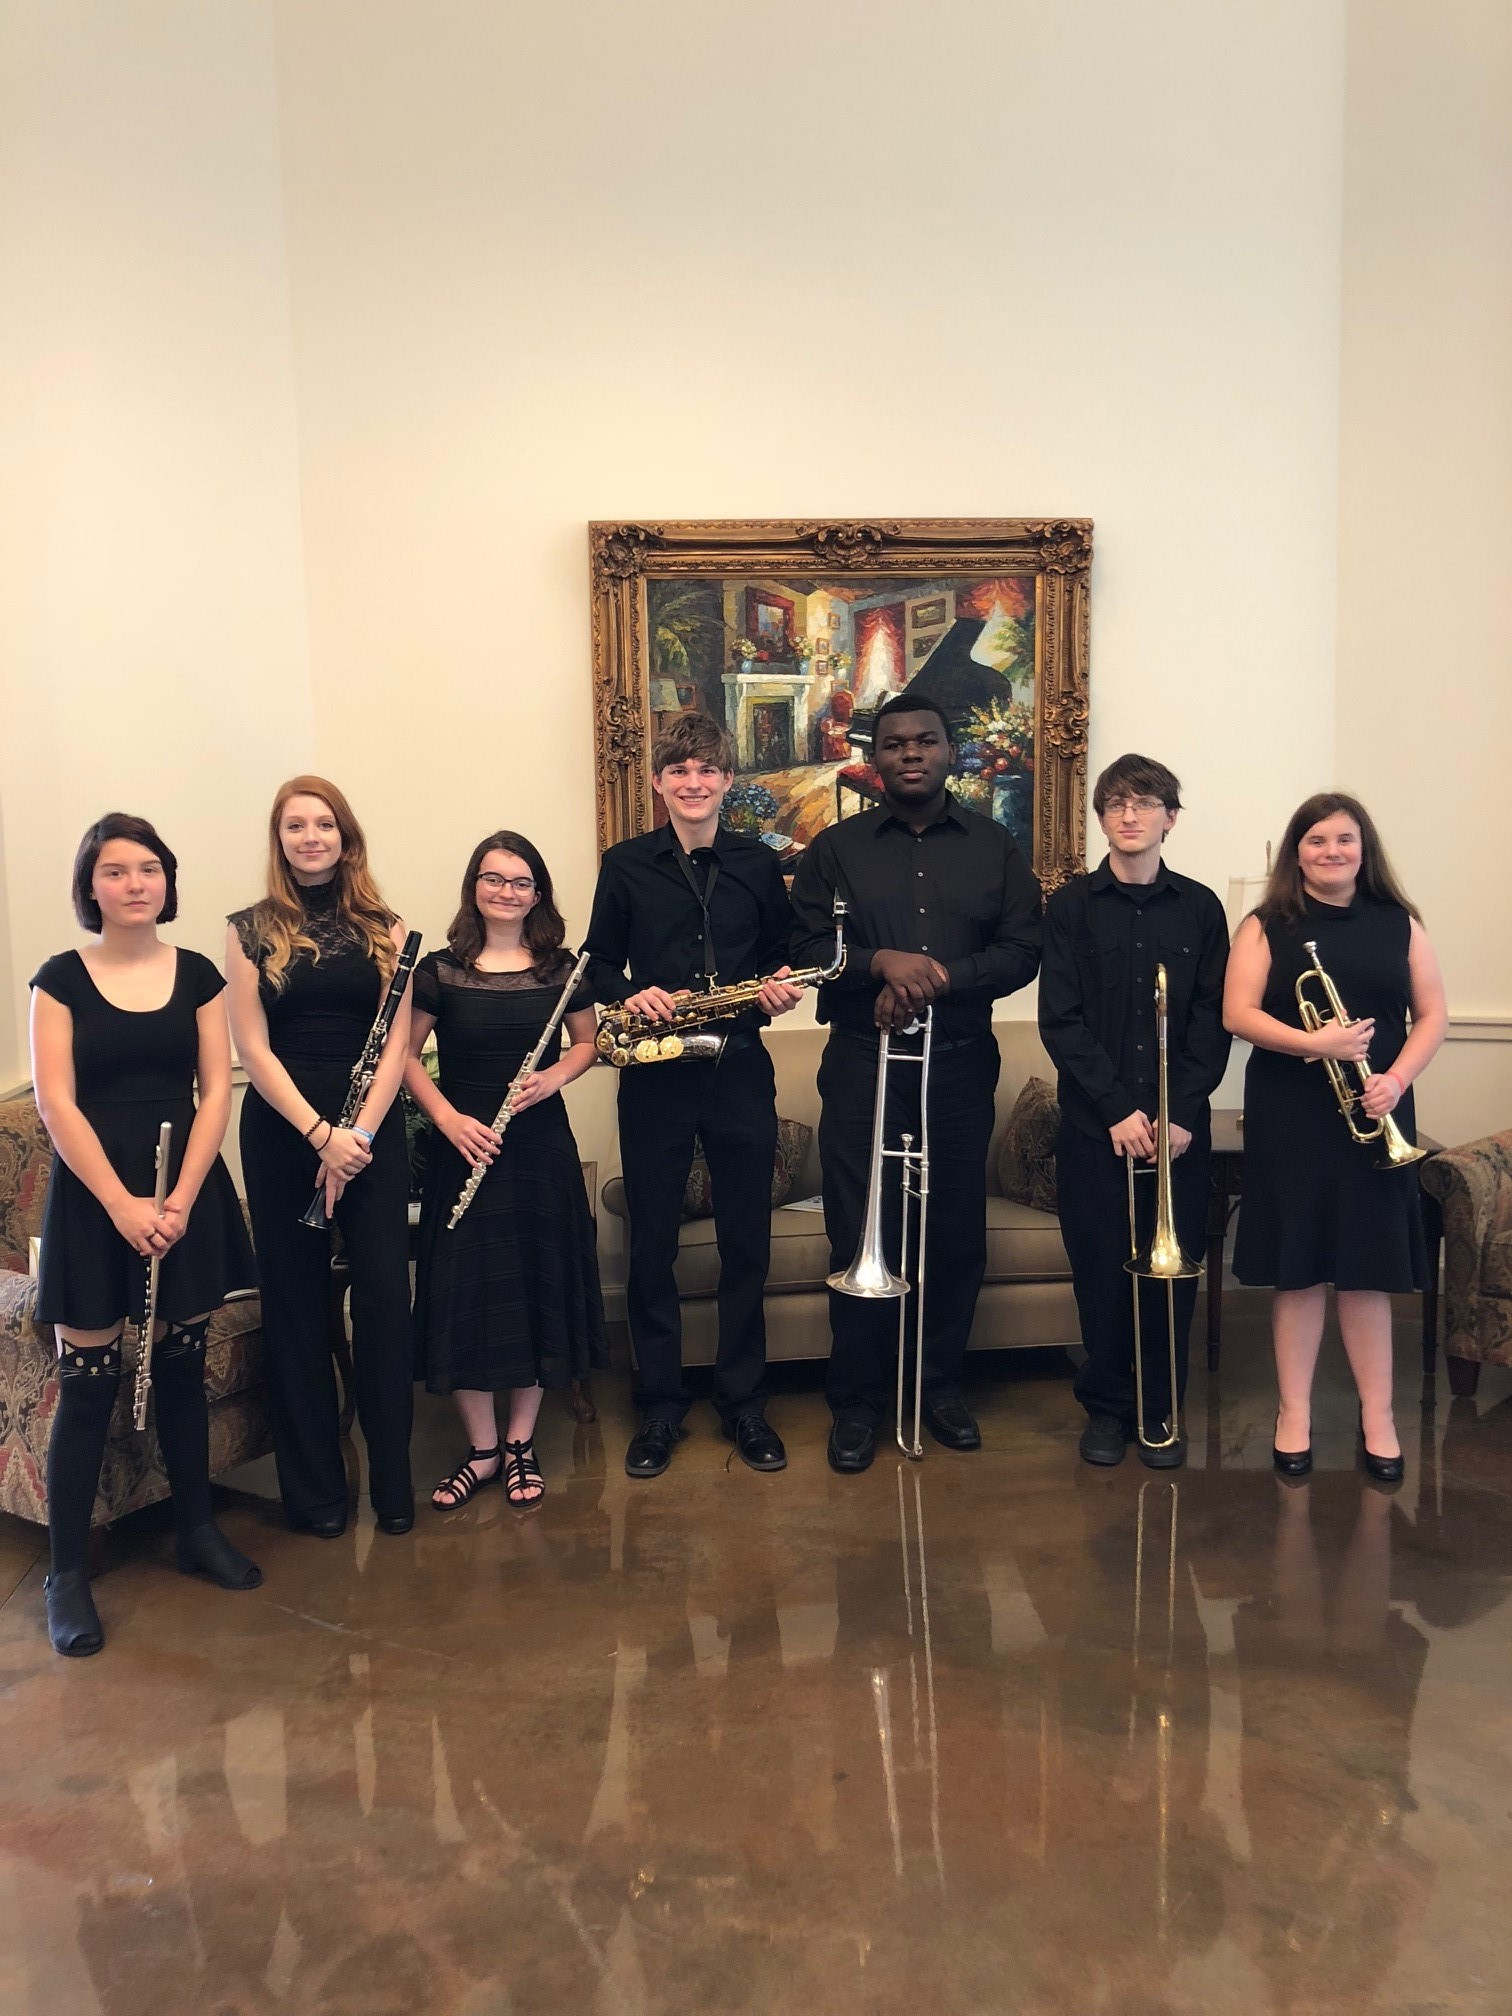 On Saturday, January 27th, seven students represented MHS in the FBA District 2 Honor Band.  These students were nominated by MHS Band Director, Mrs. Alissa Wayman.  The students then had to audition for a judge and be selected to perform with the band.  The students practiced all day Friday, as well as Saturday morning at the First Baptist Church in Chipley.  The honor band was comprised of students from eleven area schools.  Congratulations to these students!     Hannah Autrey, Clarinet     Barbara McAllister, Flute     Carmalynn McAllister, Trumpet     Chase Meadows, Alto Saxophone     Jake Moss, Trombone     Marci Resendiz, Flute     Carlos Staley, Trombone